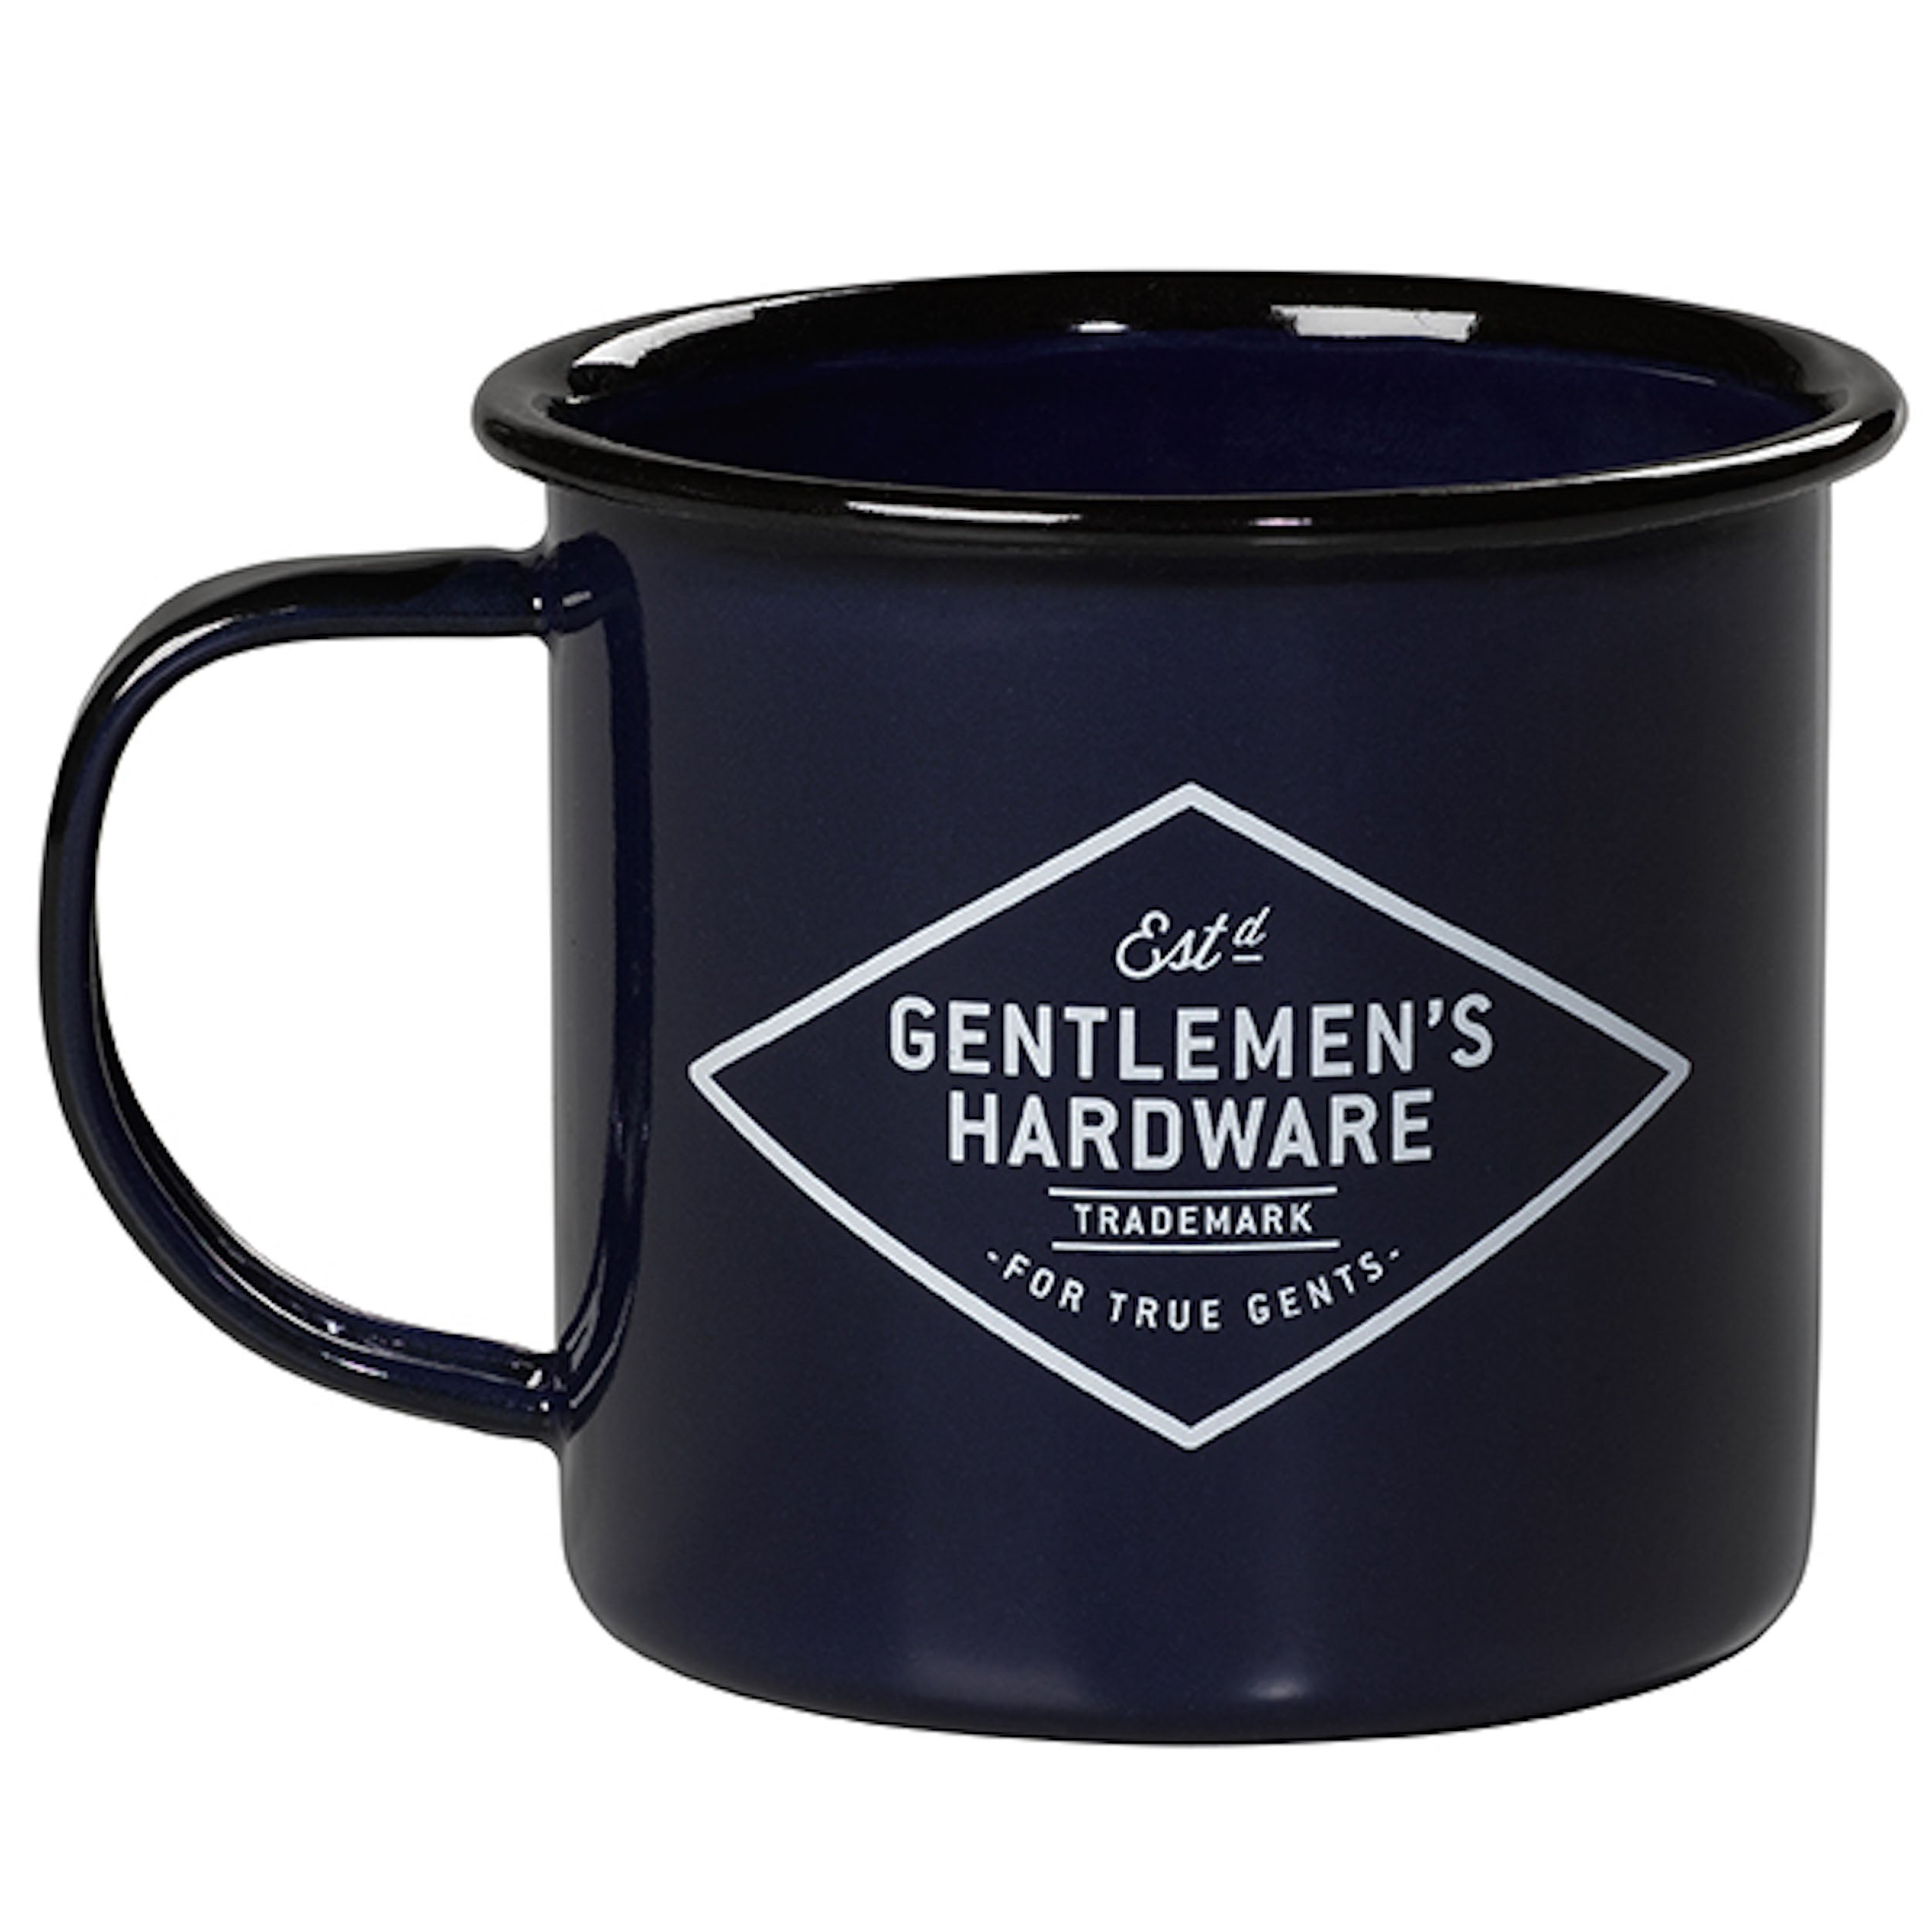 Gentlemen's Hardware The Adventure Begins Enamel Mug